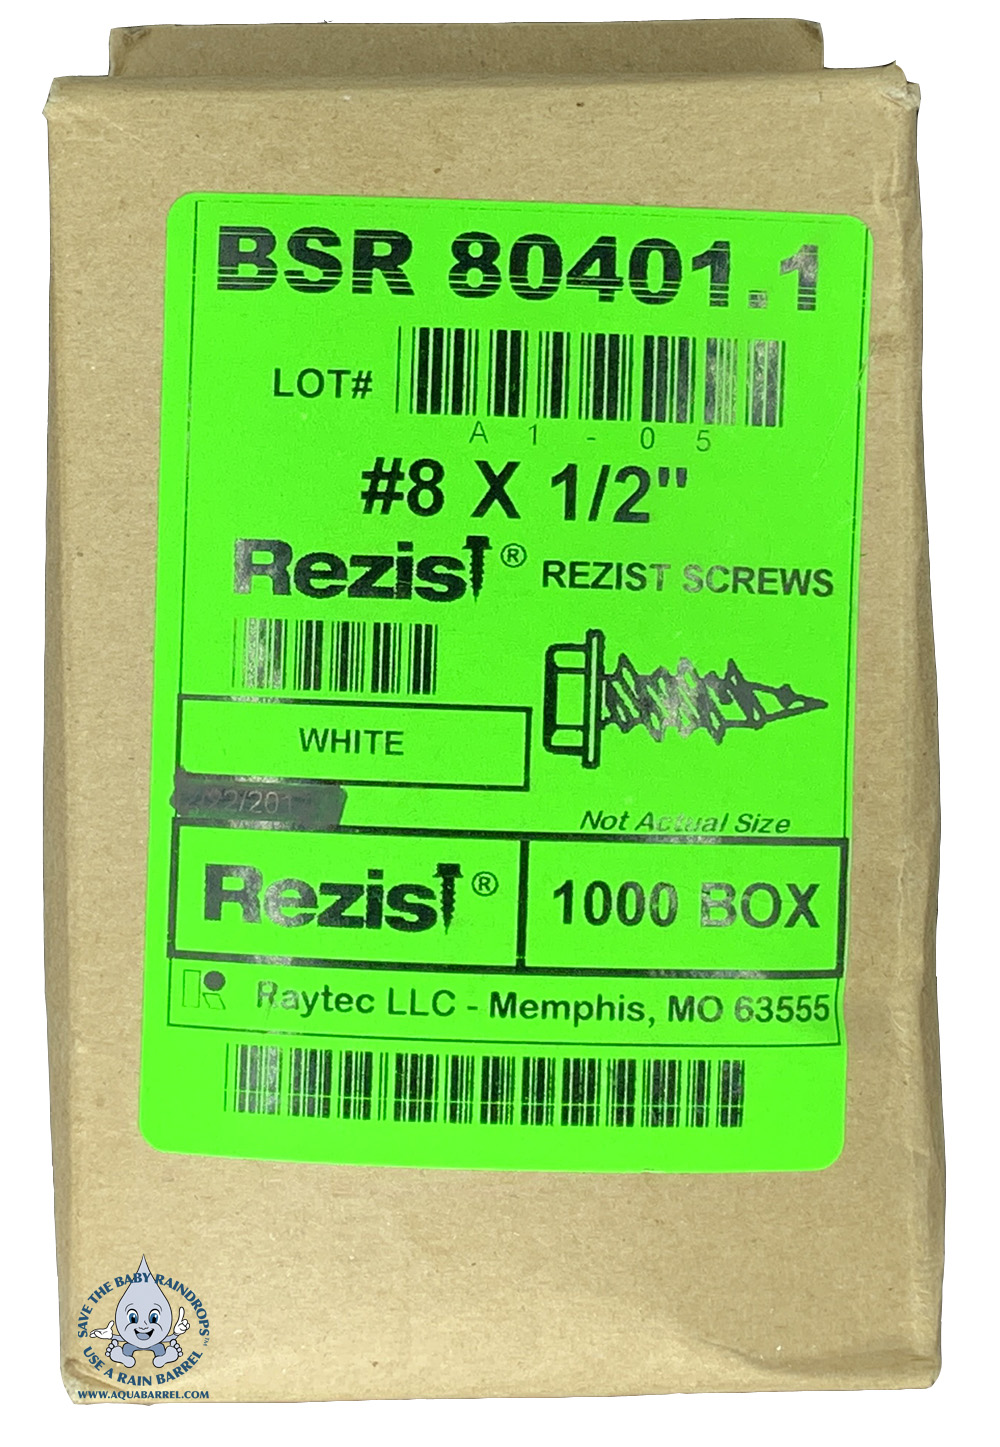 Box of 1000 Rezist gutter screws #8 x 1/2""